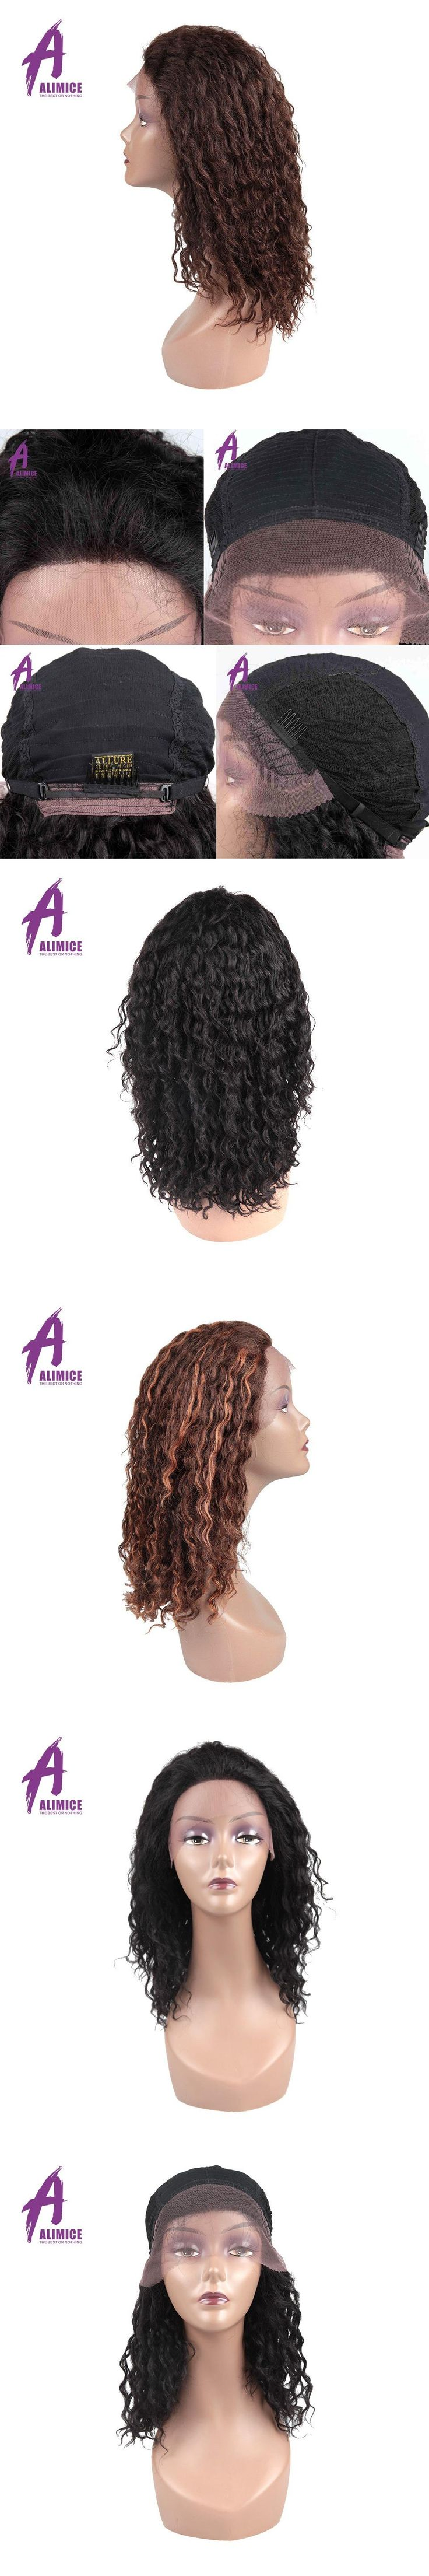 """Alimice Human Hair Lace Frontal Wig Brazilian Curly Hair Wig 1.5""""x11"""" Lace Color 2/1B and Color 4/30 Available Non Remy Hair Wig"""